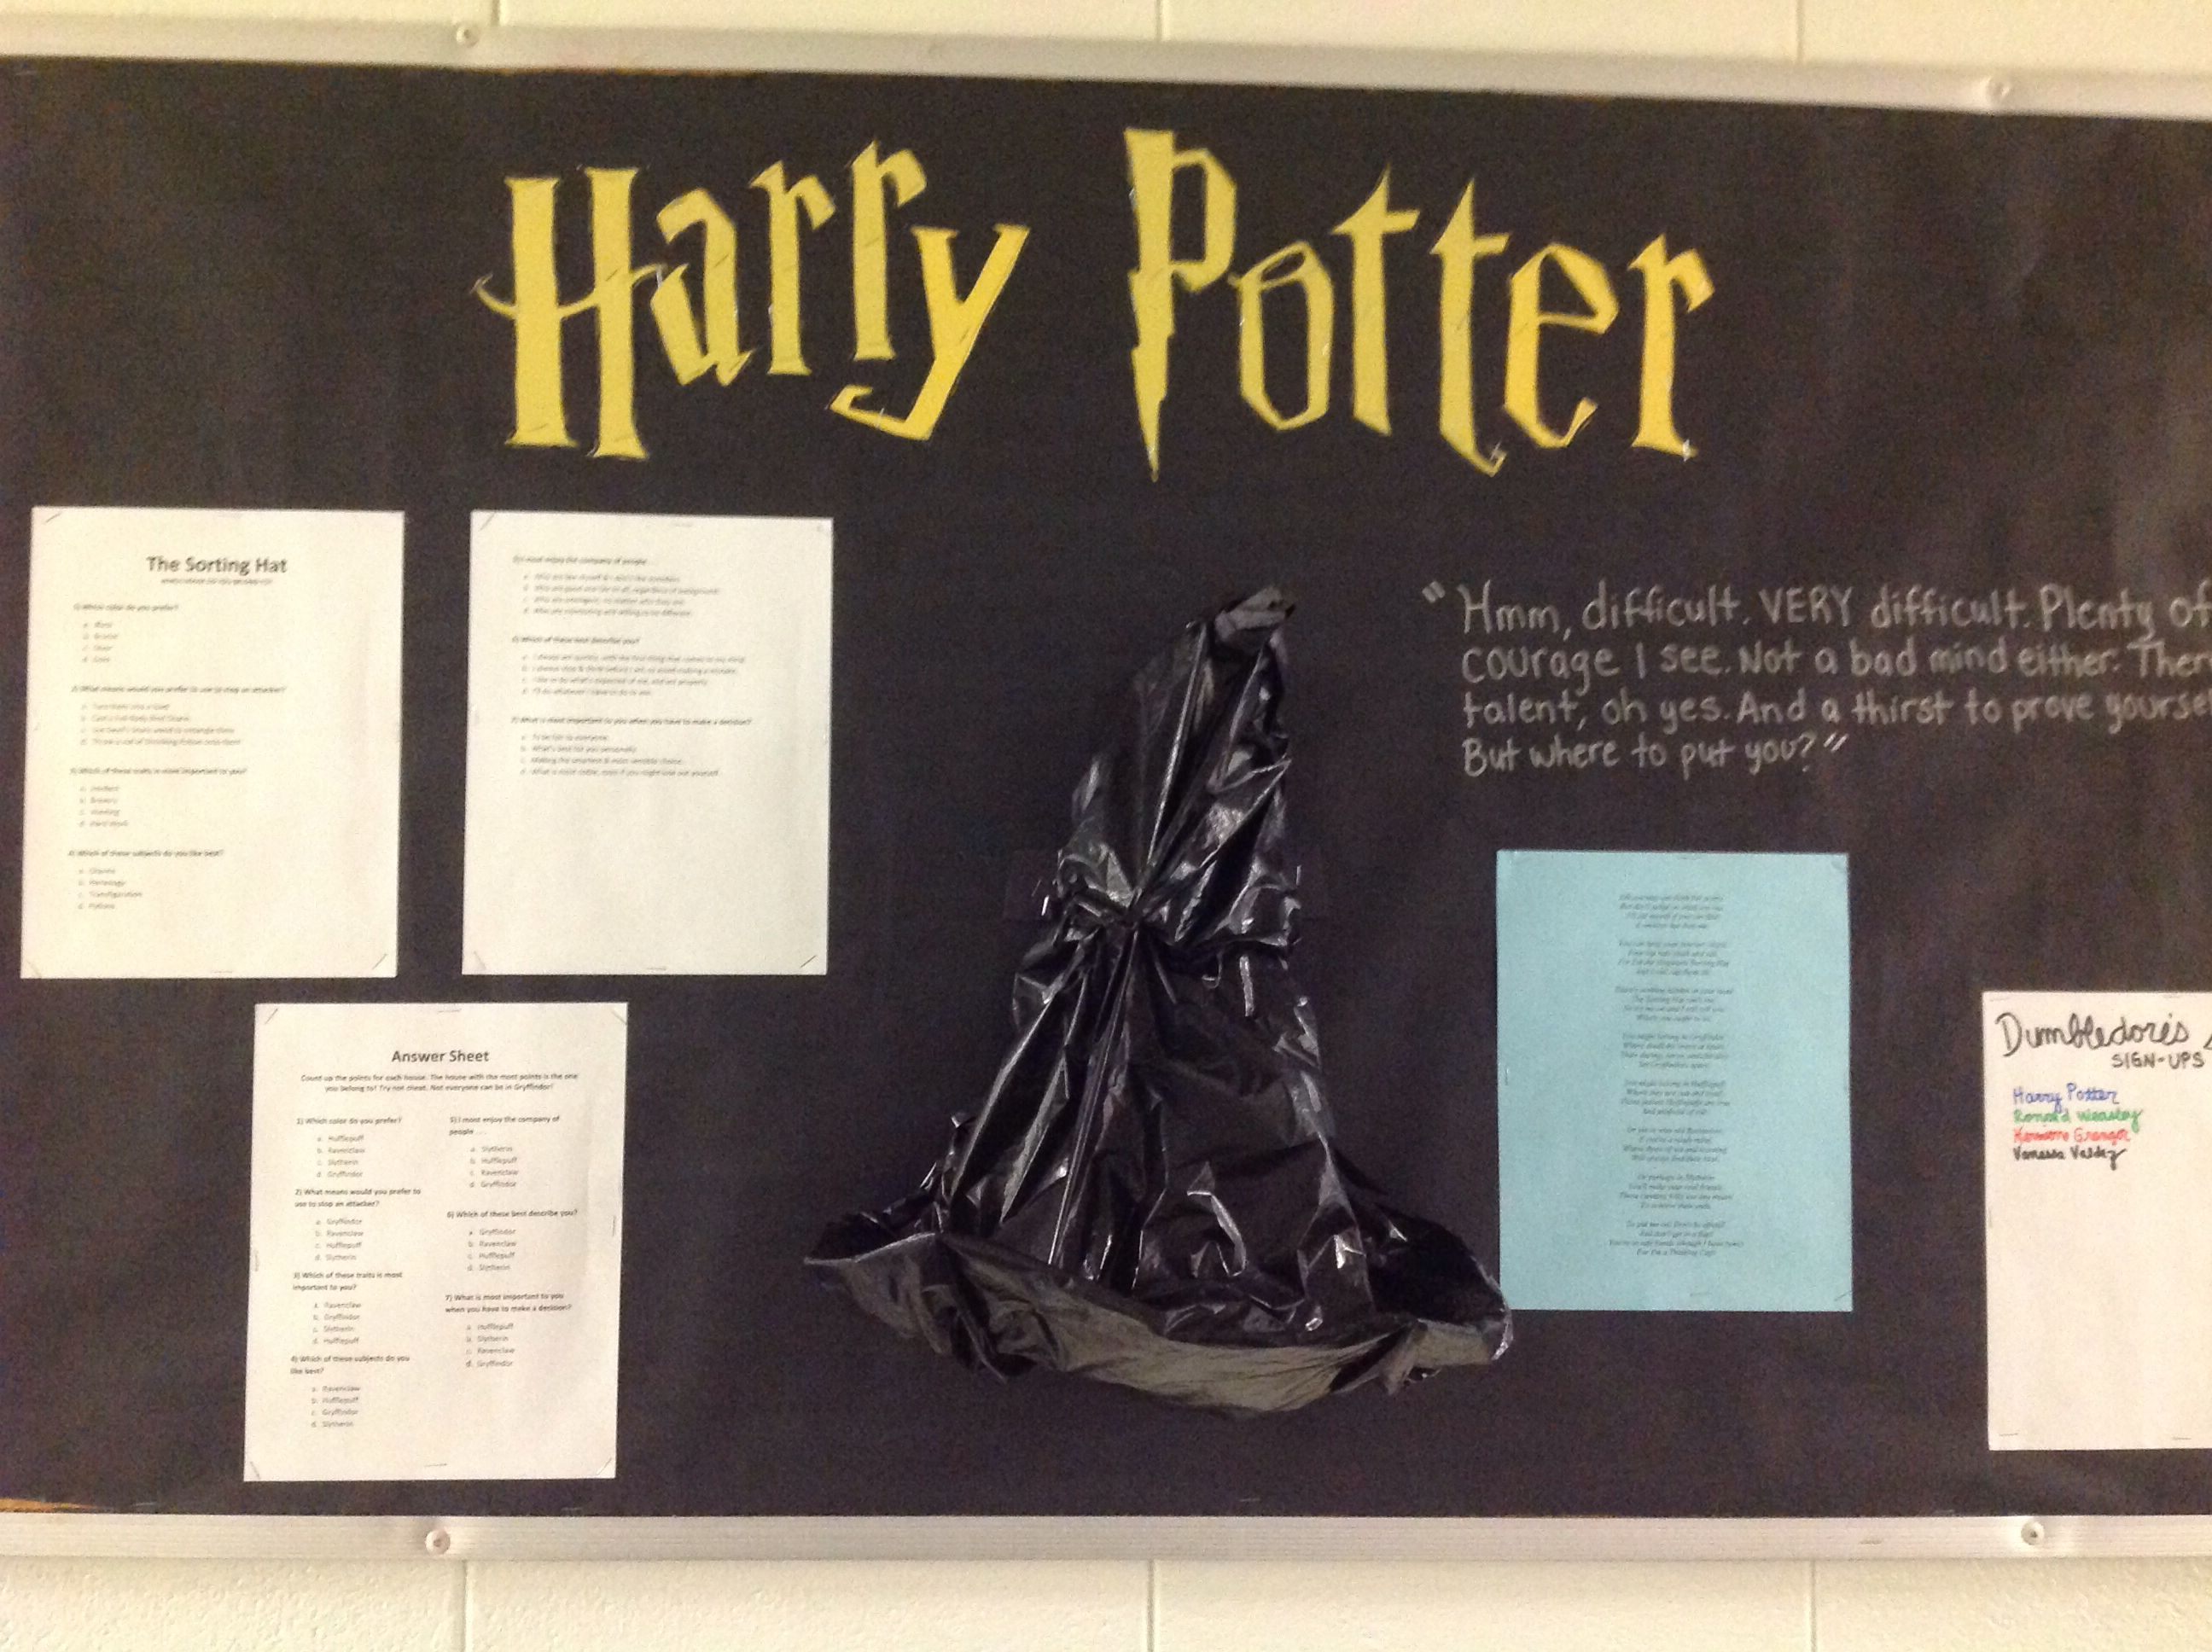 Harry Potter Bulletin Board Of Course Put Up A Quiz To Help Sort Them In Houses I Adde Harry Potter Classroom Harry Potter Bulletin Board Hogwarts Classrooms